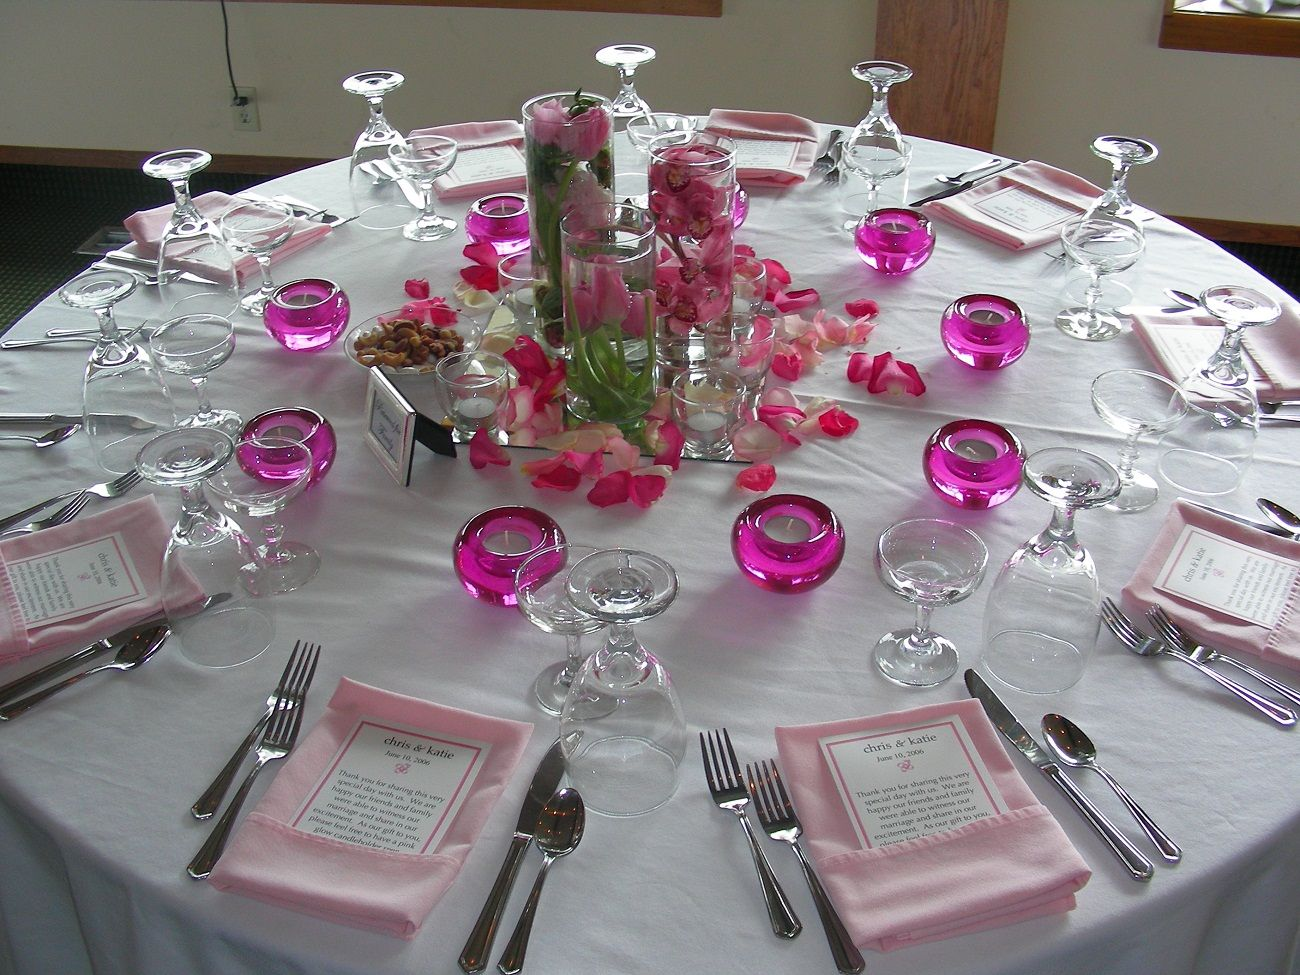 Table decoration for party - Thanksgiving Setting With Roses Google Search Centerpiece Ideaswedding Table